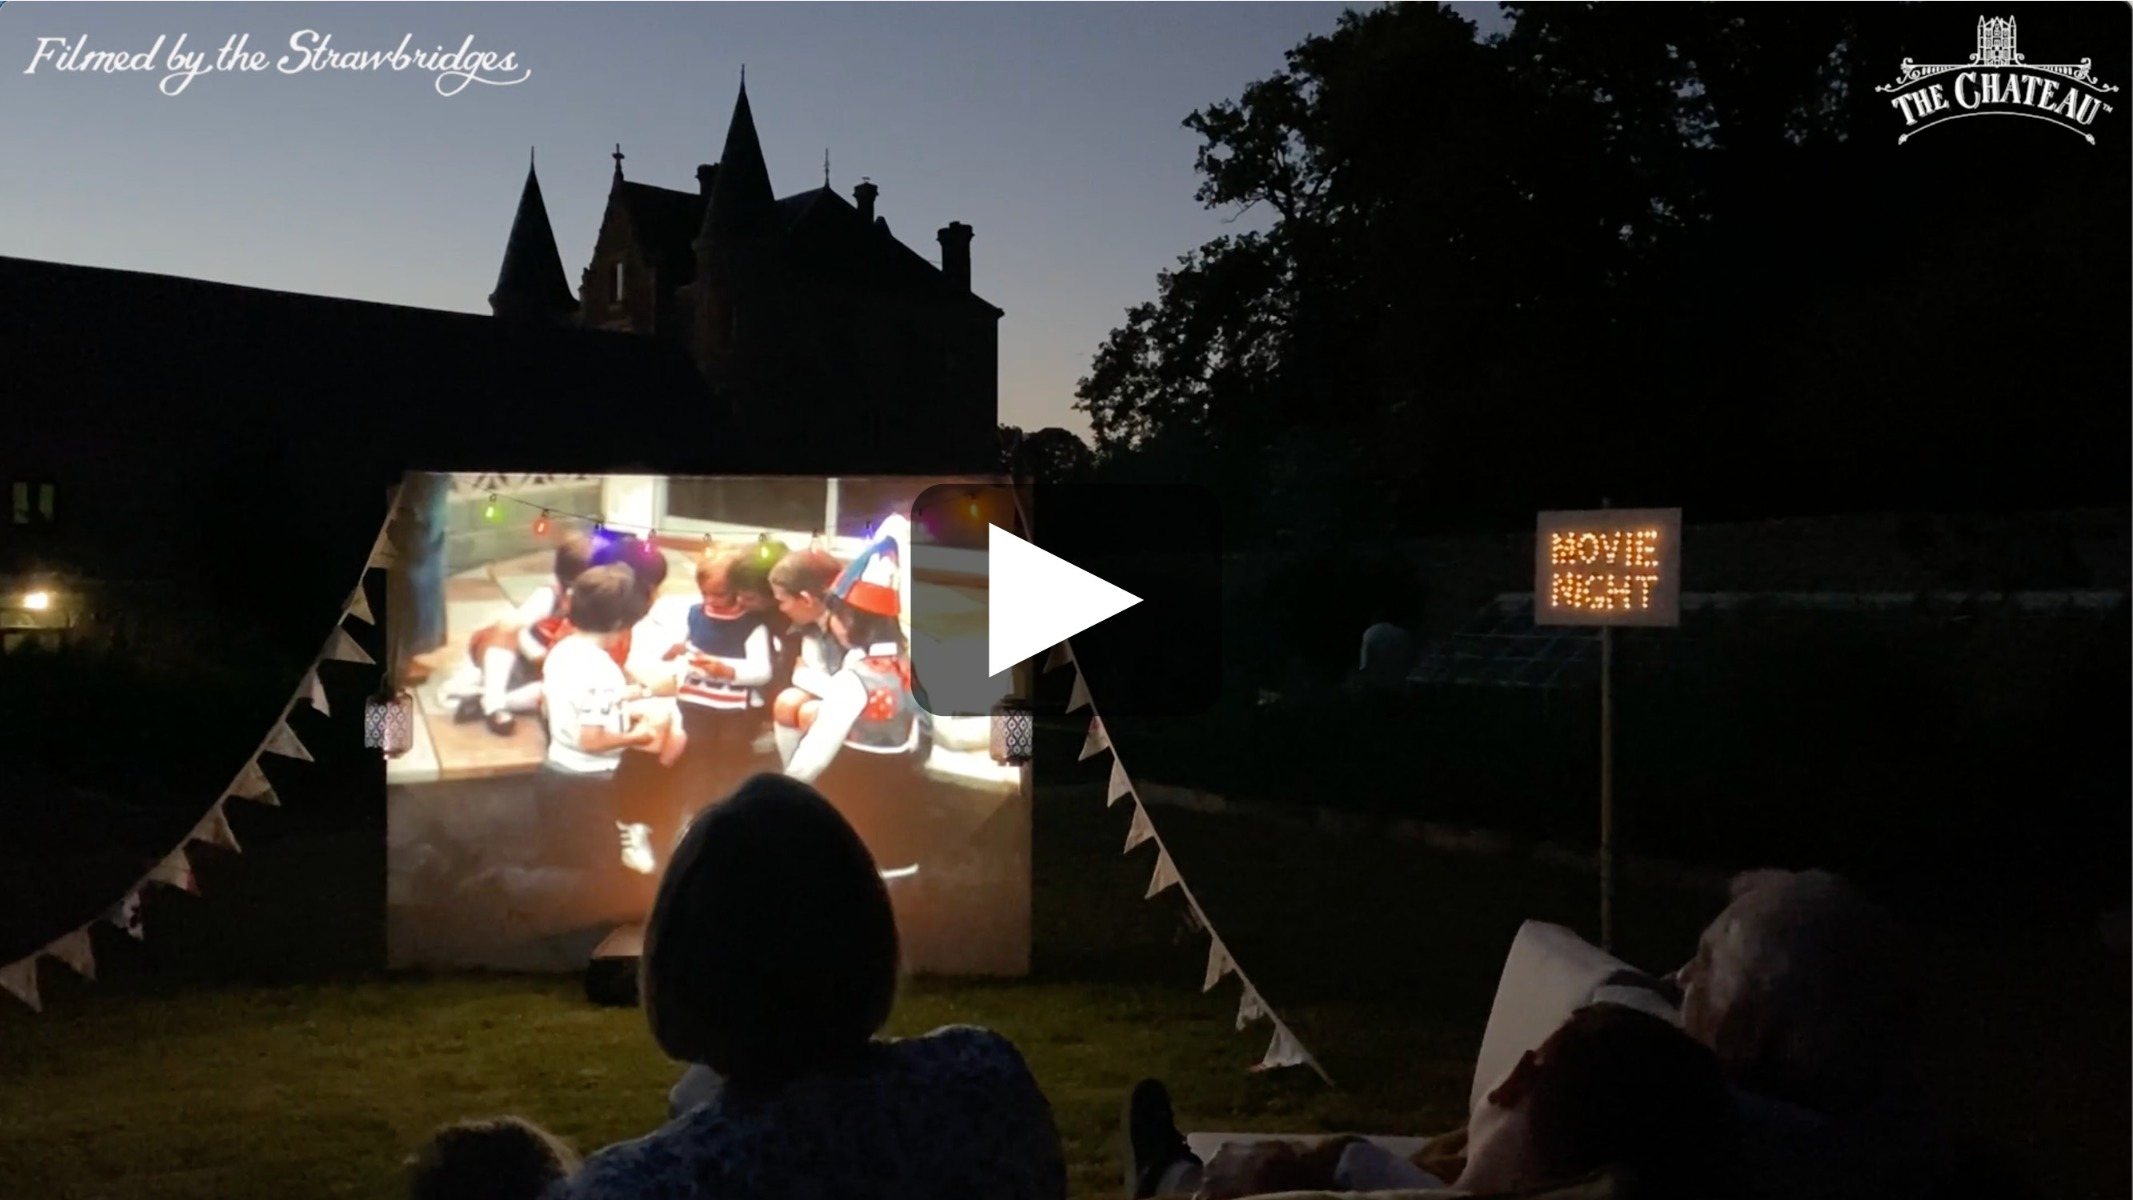 Video frame of a homemade cinema night at The Chateau